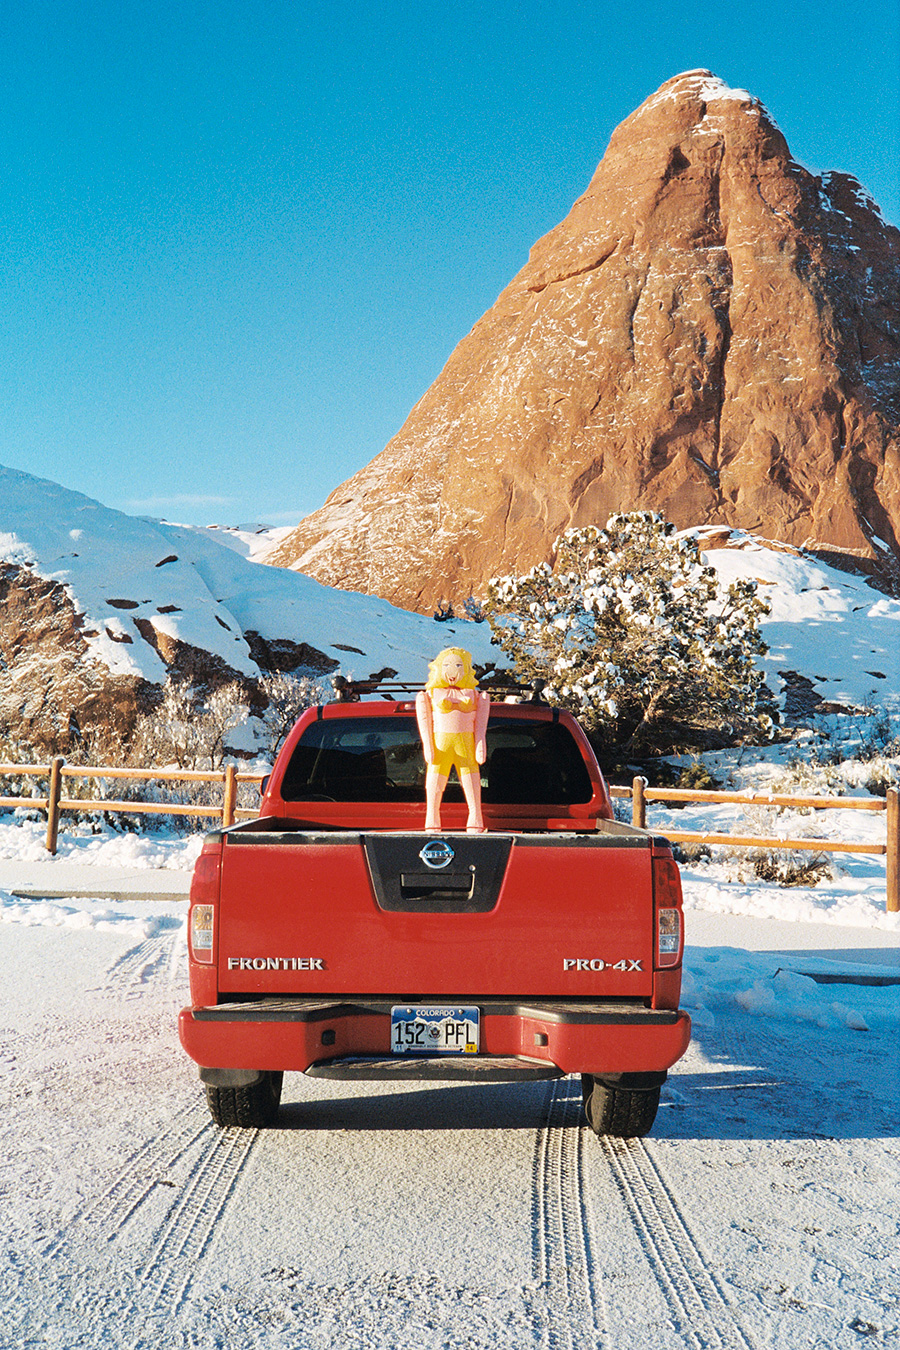 Out of the three or four cars we saw our whole time in Arches, of course one had to have a blow up doll strapped to it.